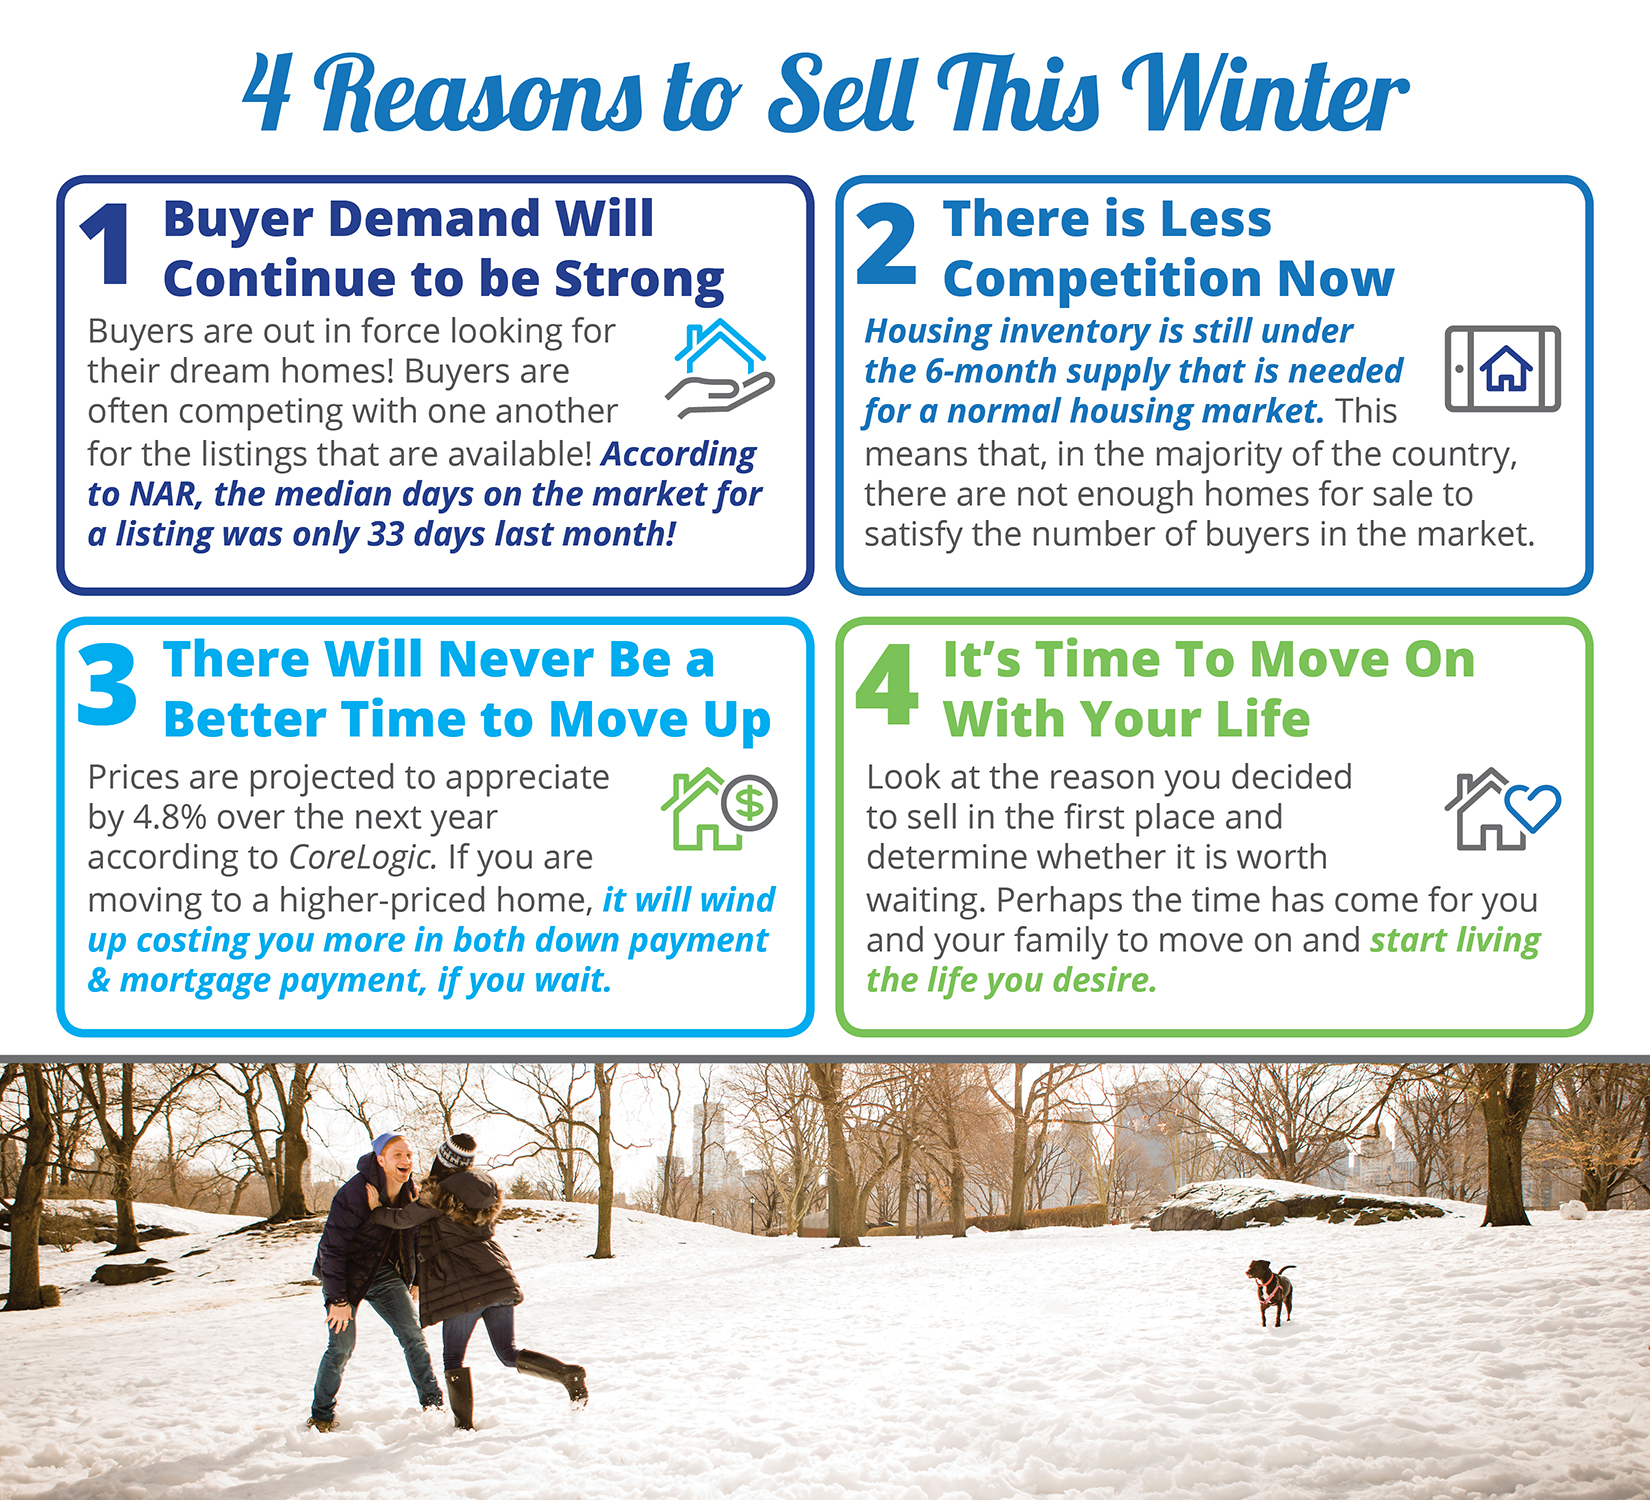 4 Reasons to Sell Your House This Winter [INFOGRAPHIC] | Bridge Builders